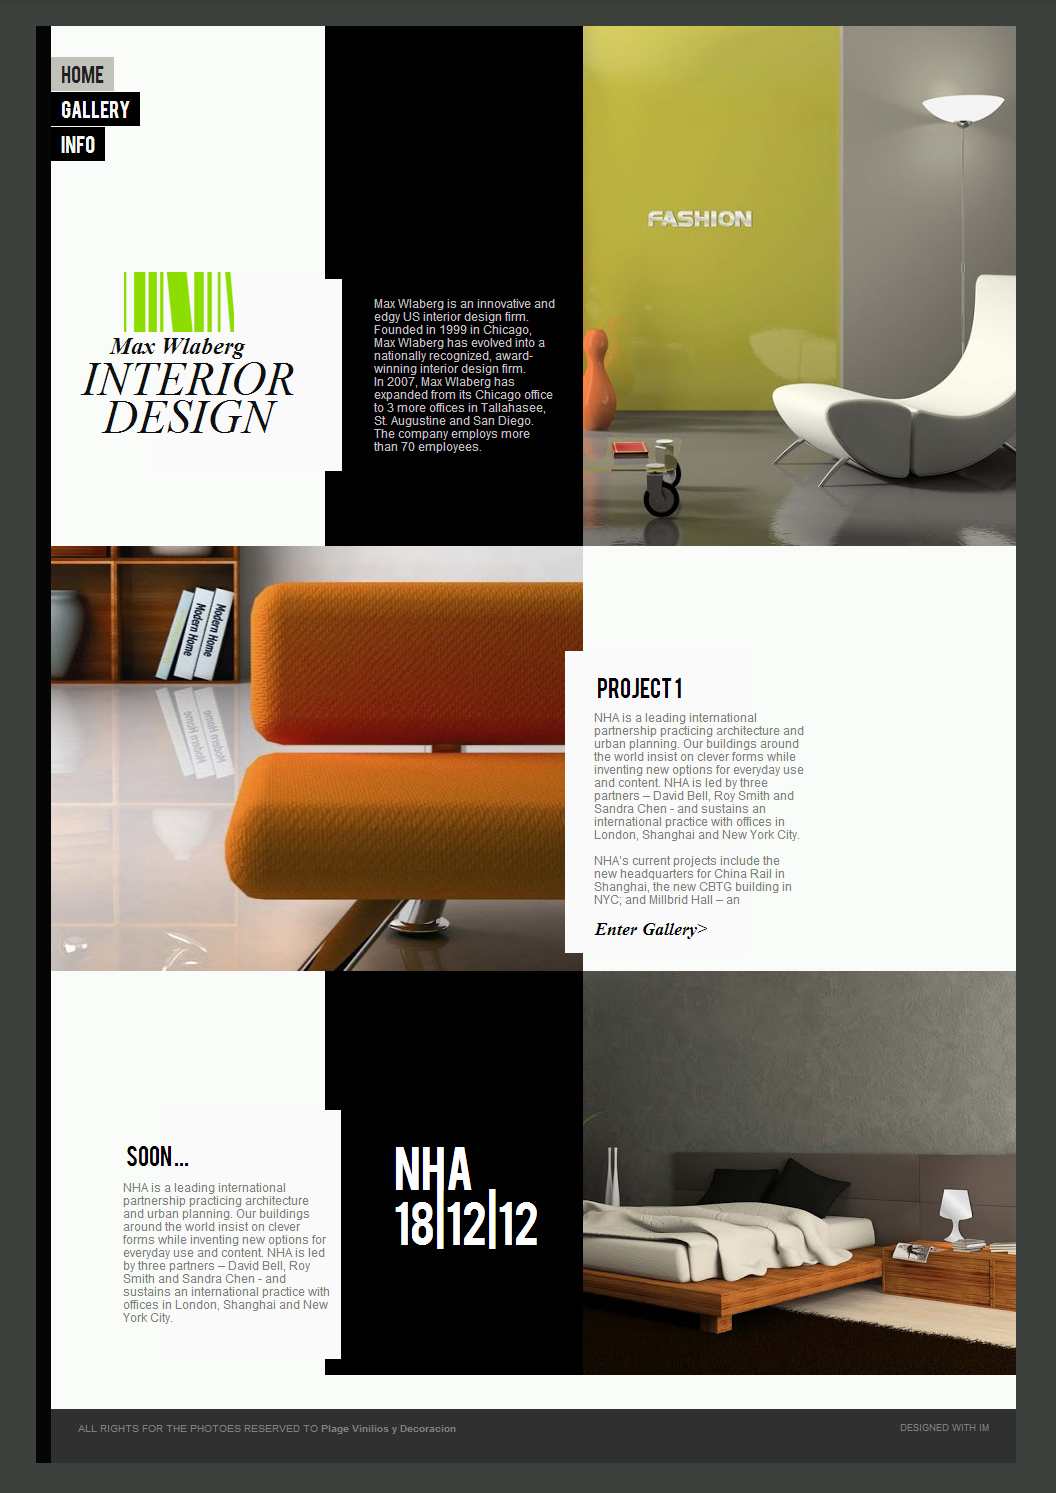 home design website. Interior design website template